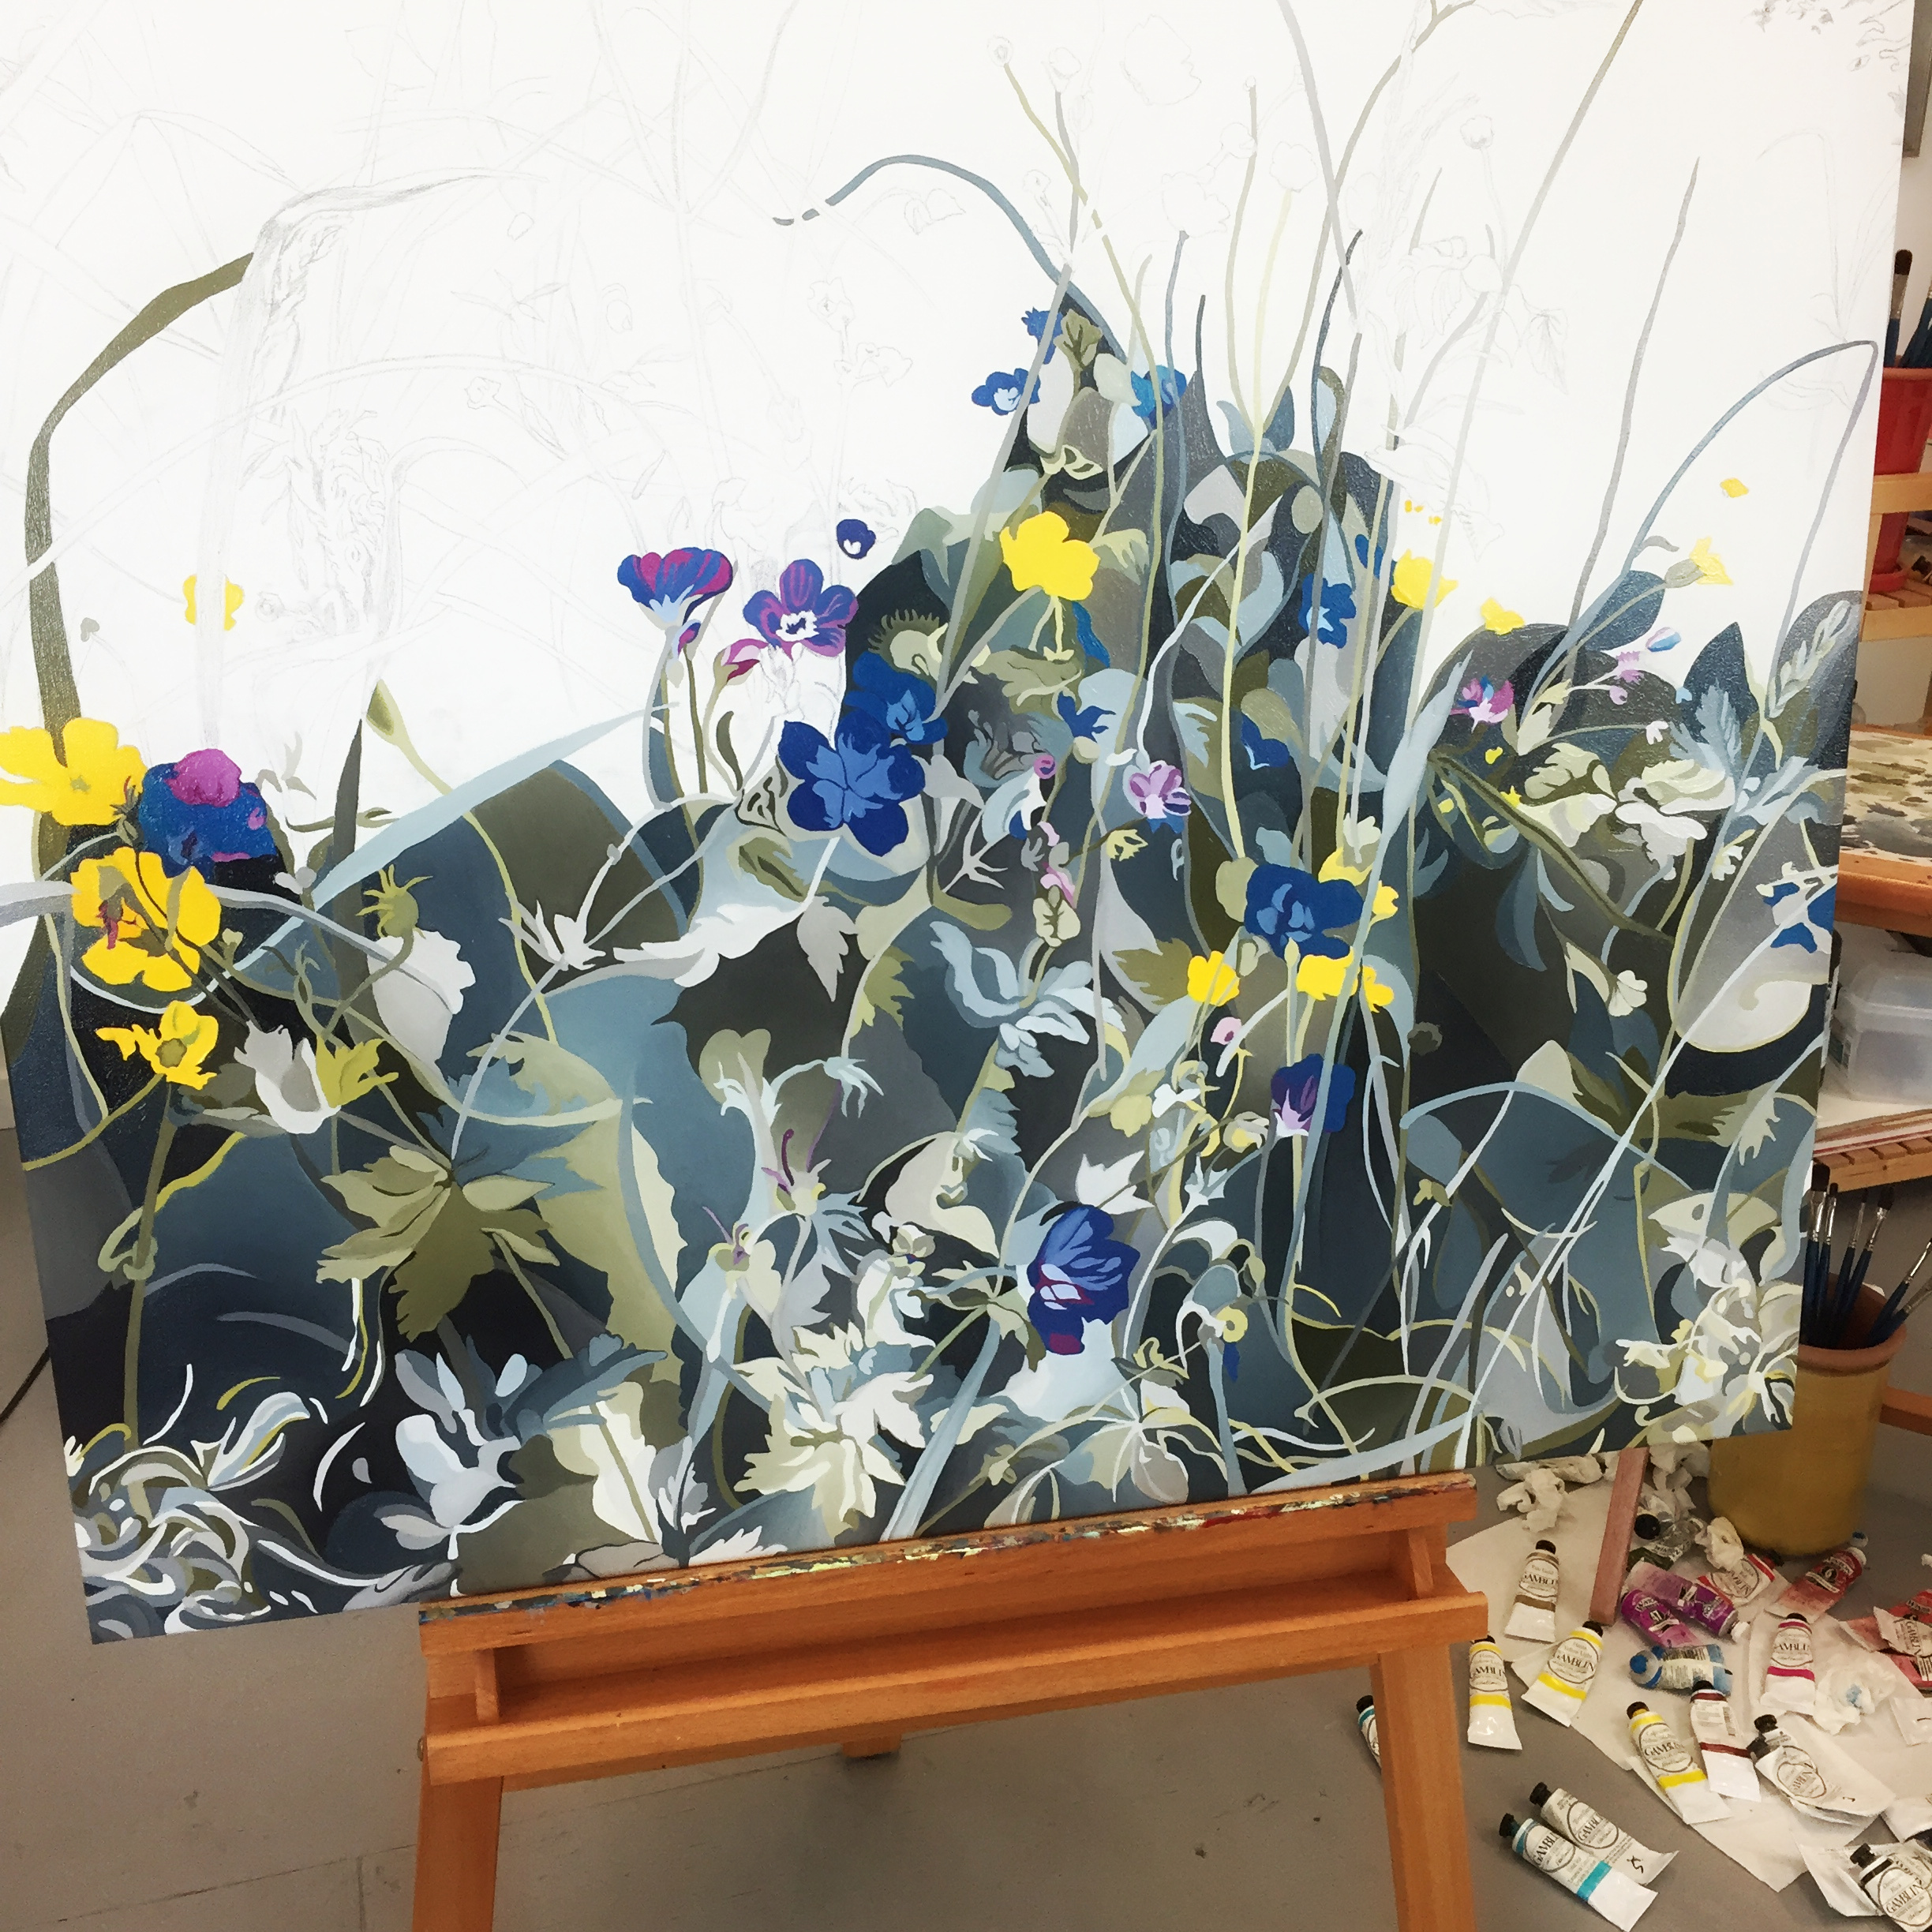 Hope For The Flowers - work in progress